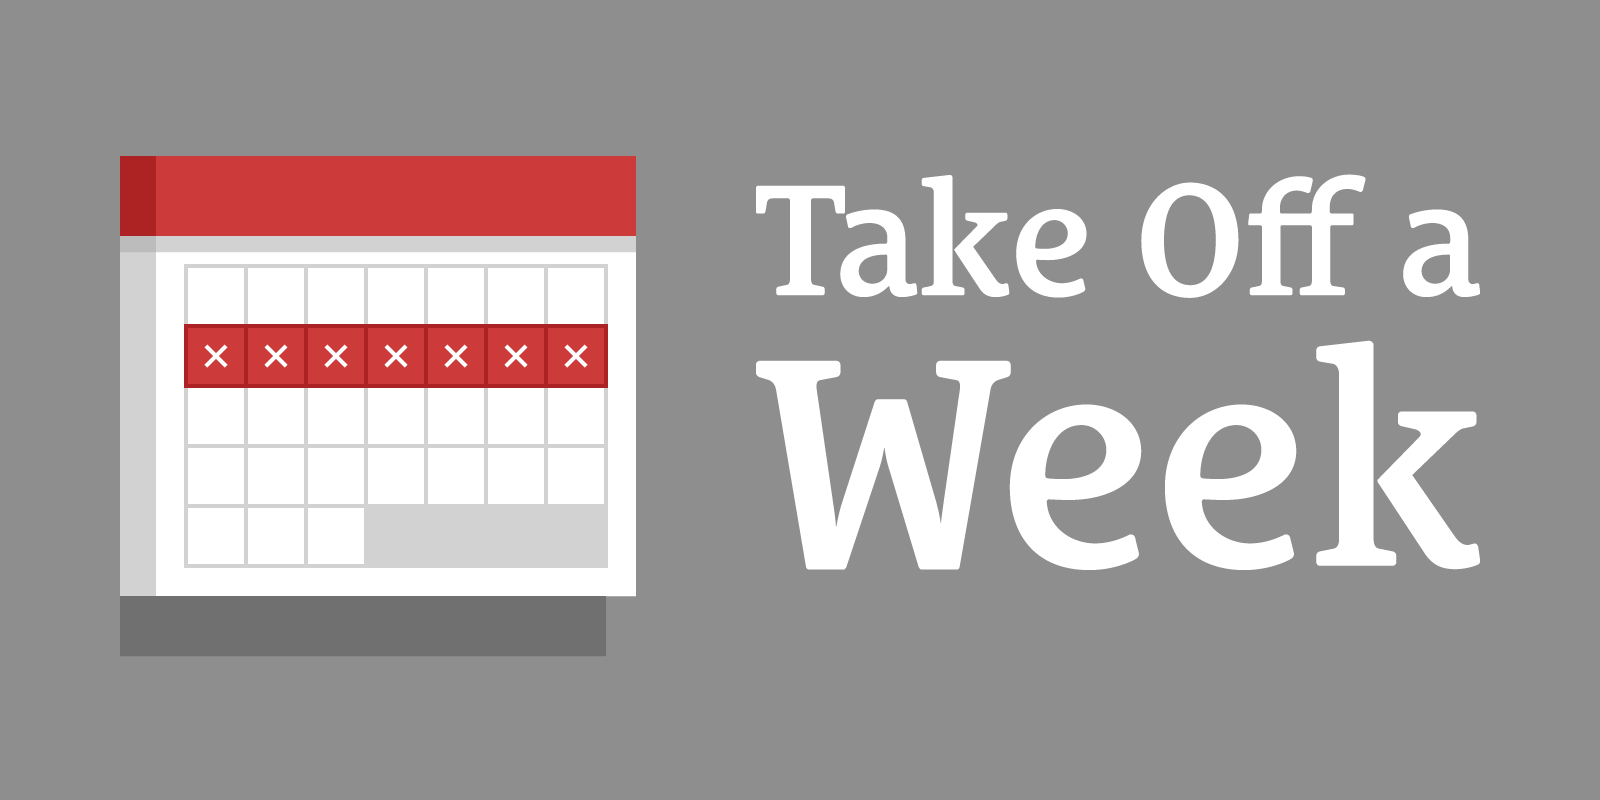 How to Take Off a Week Every Seven Weeks Even if You Can't Afford To